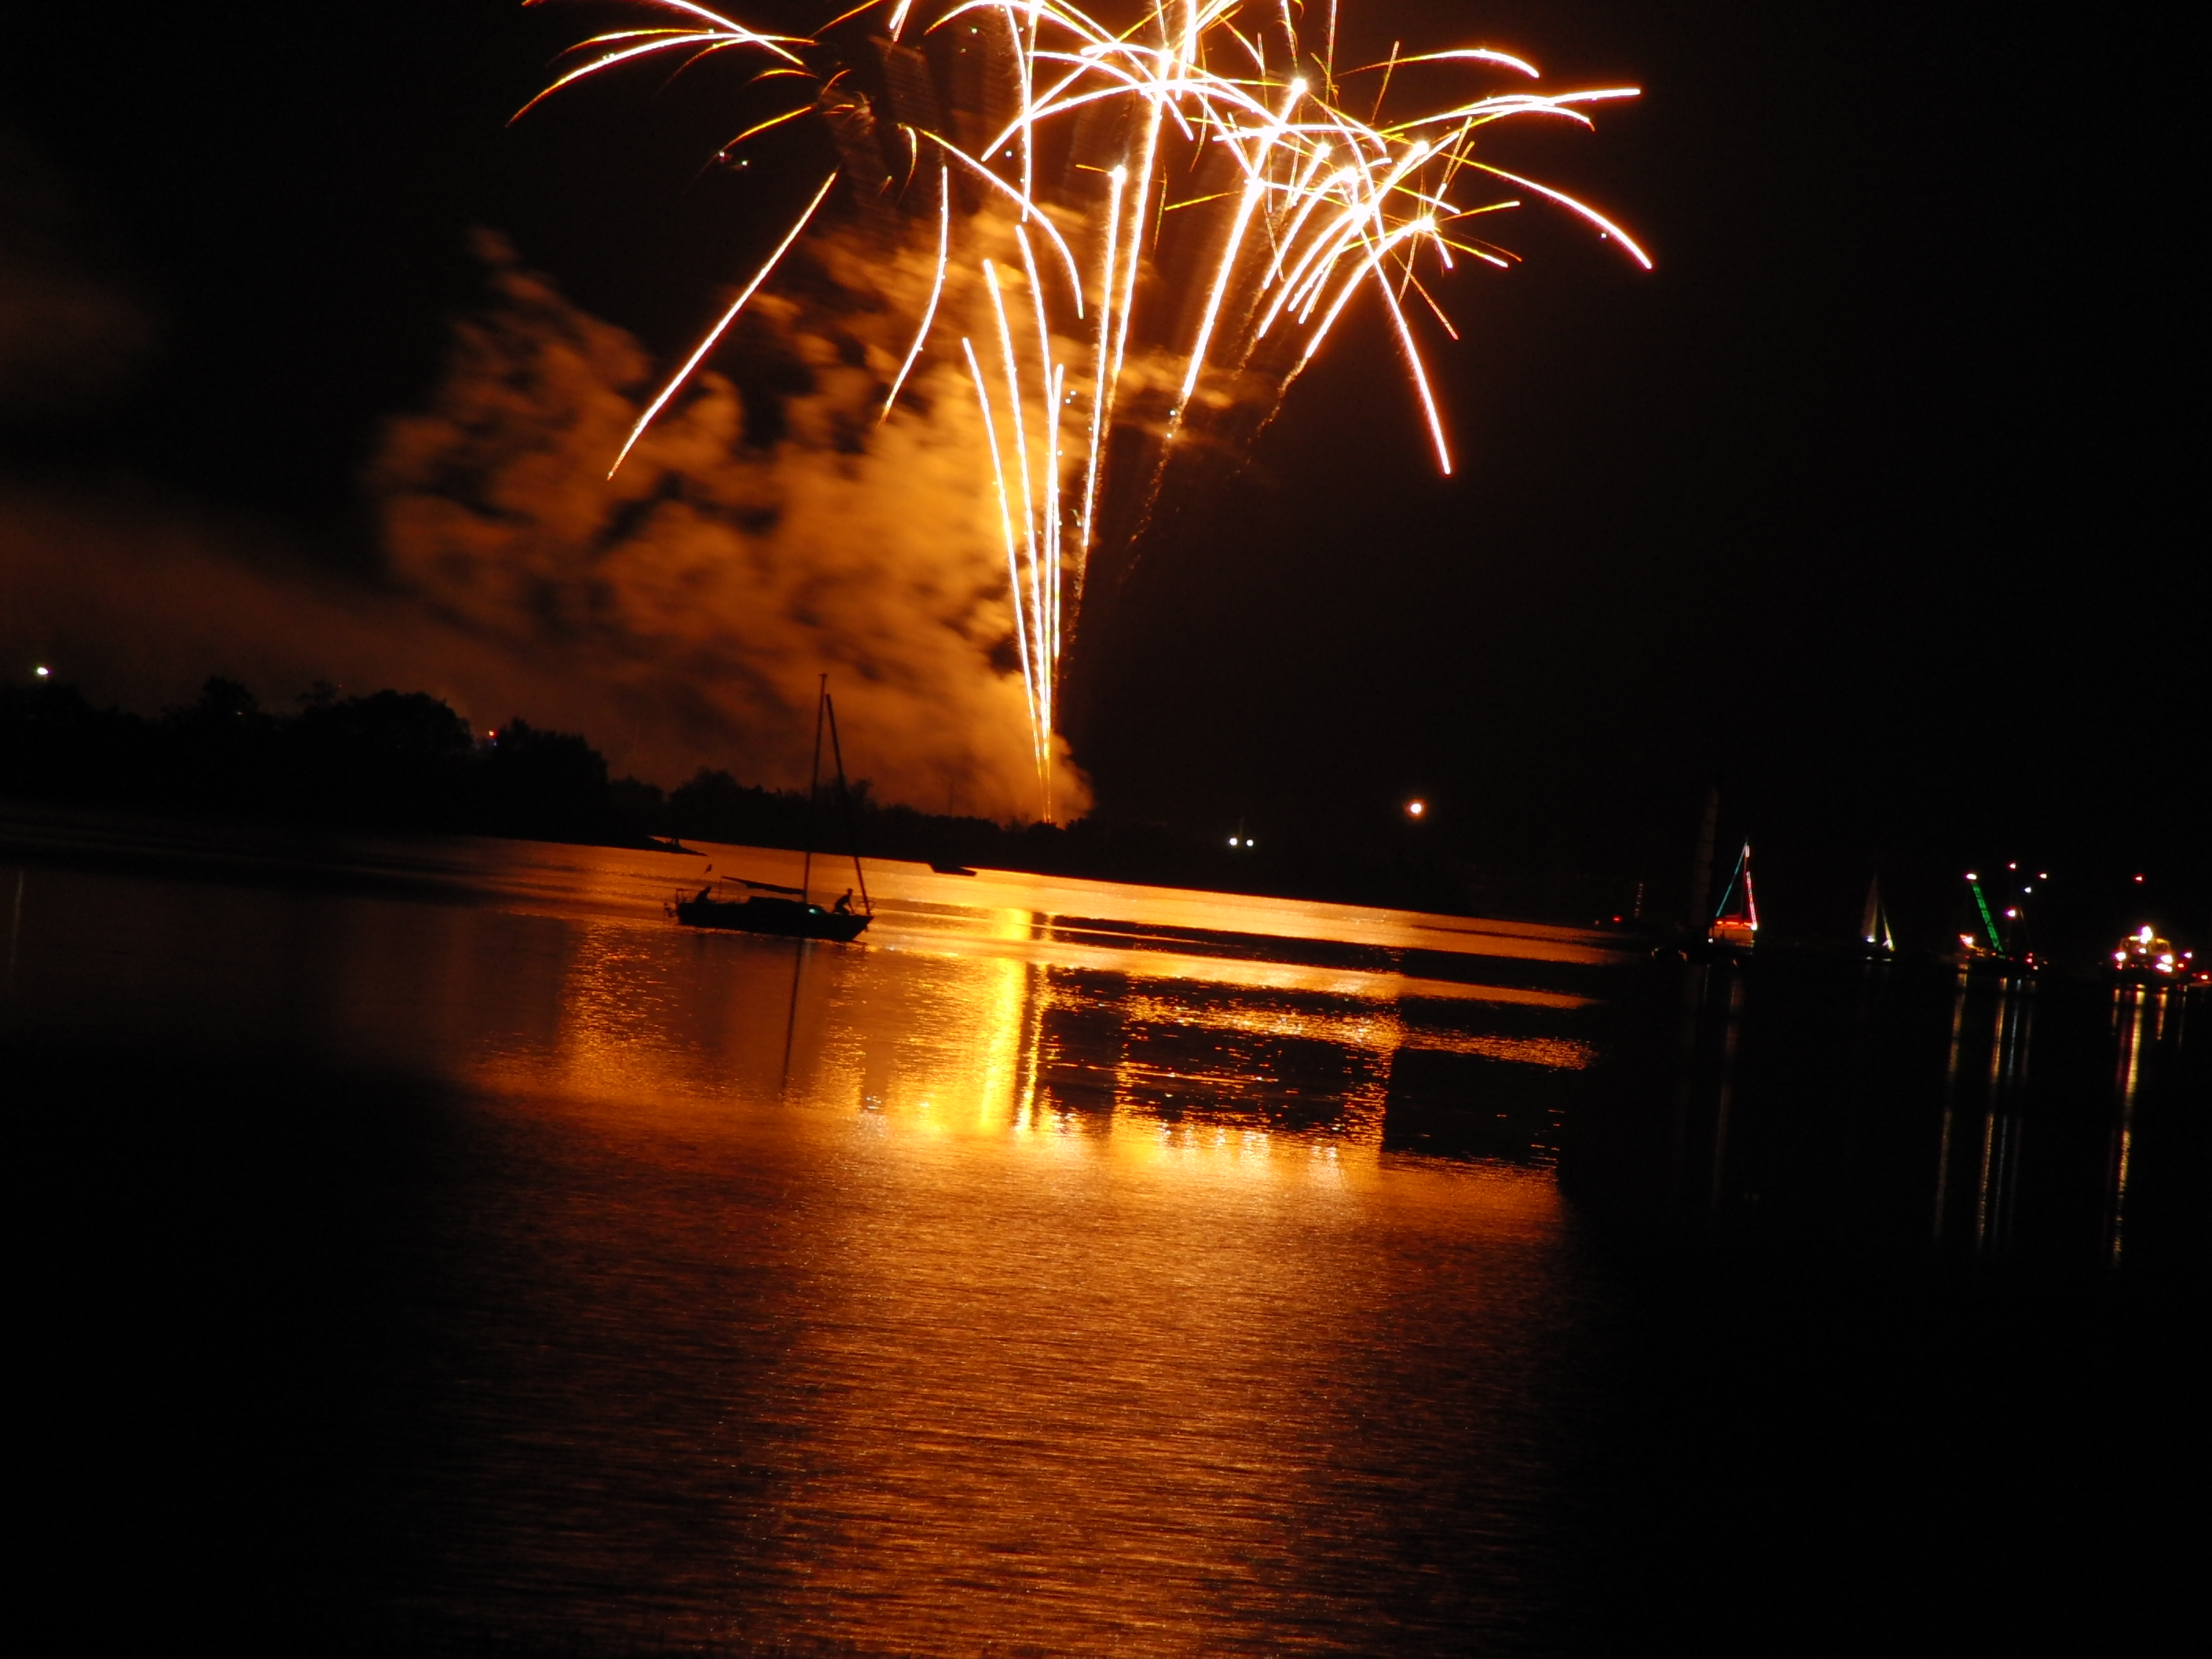 Altmühlsee in Flammen